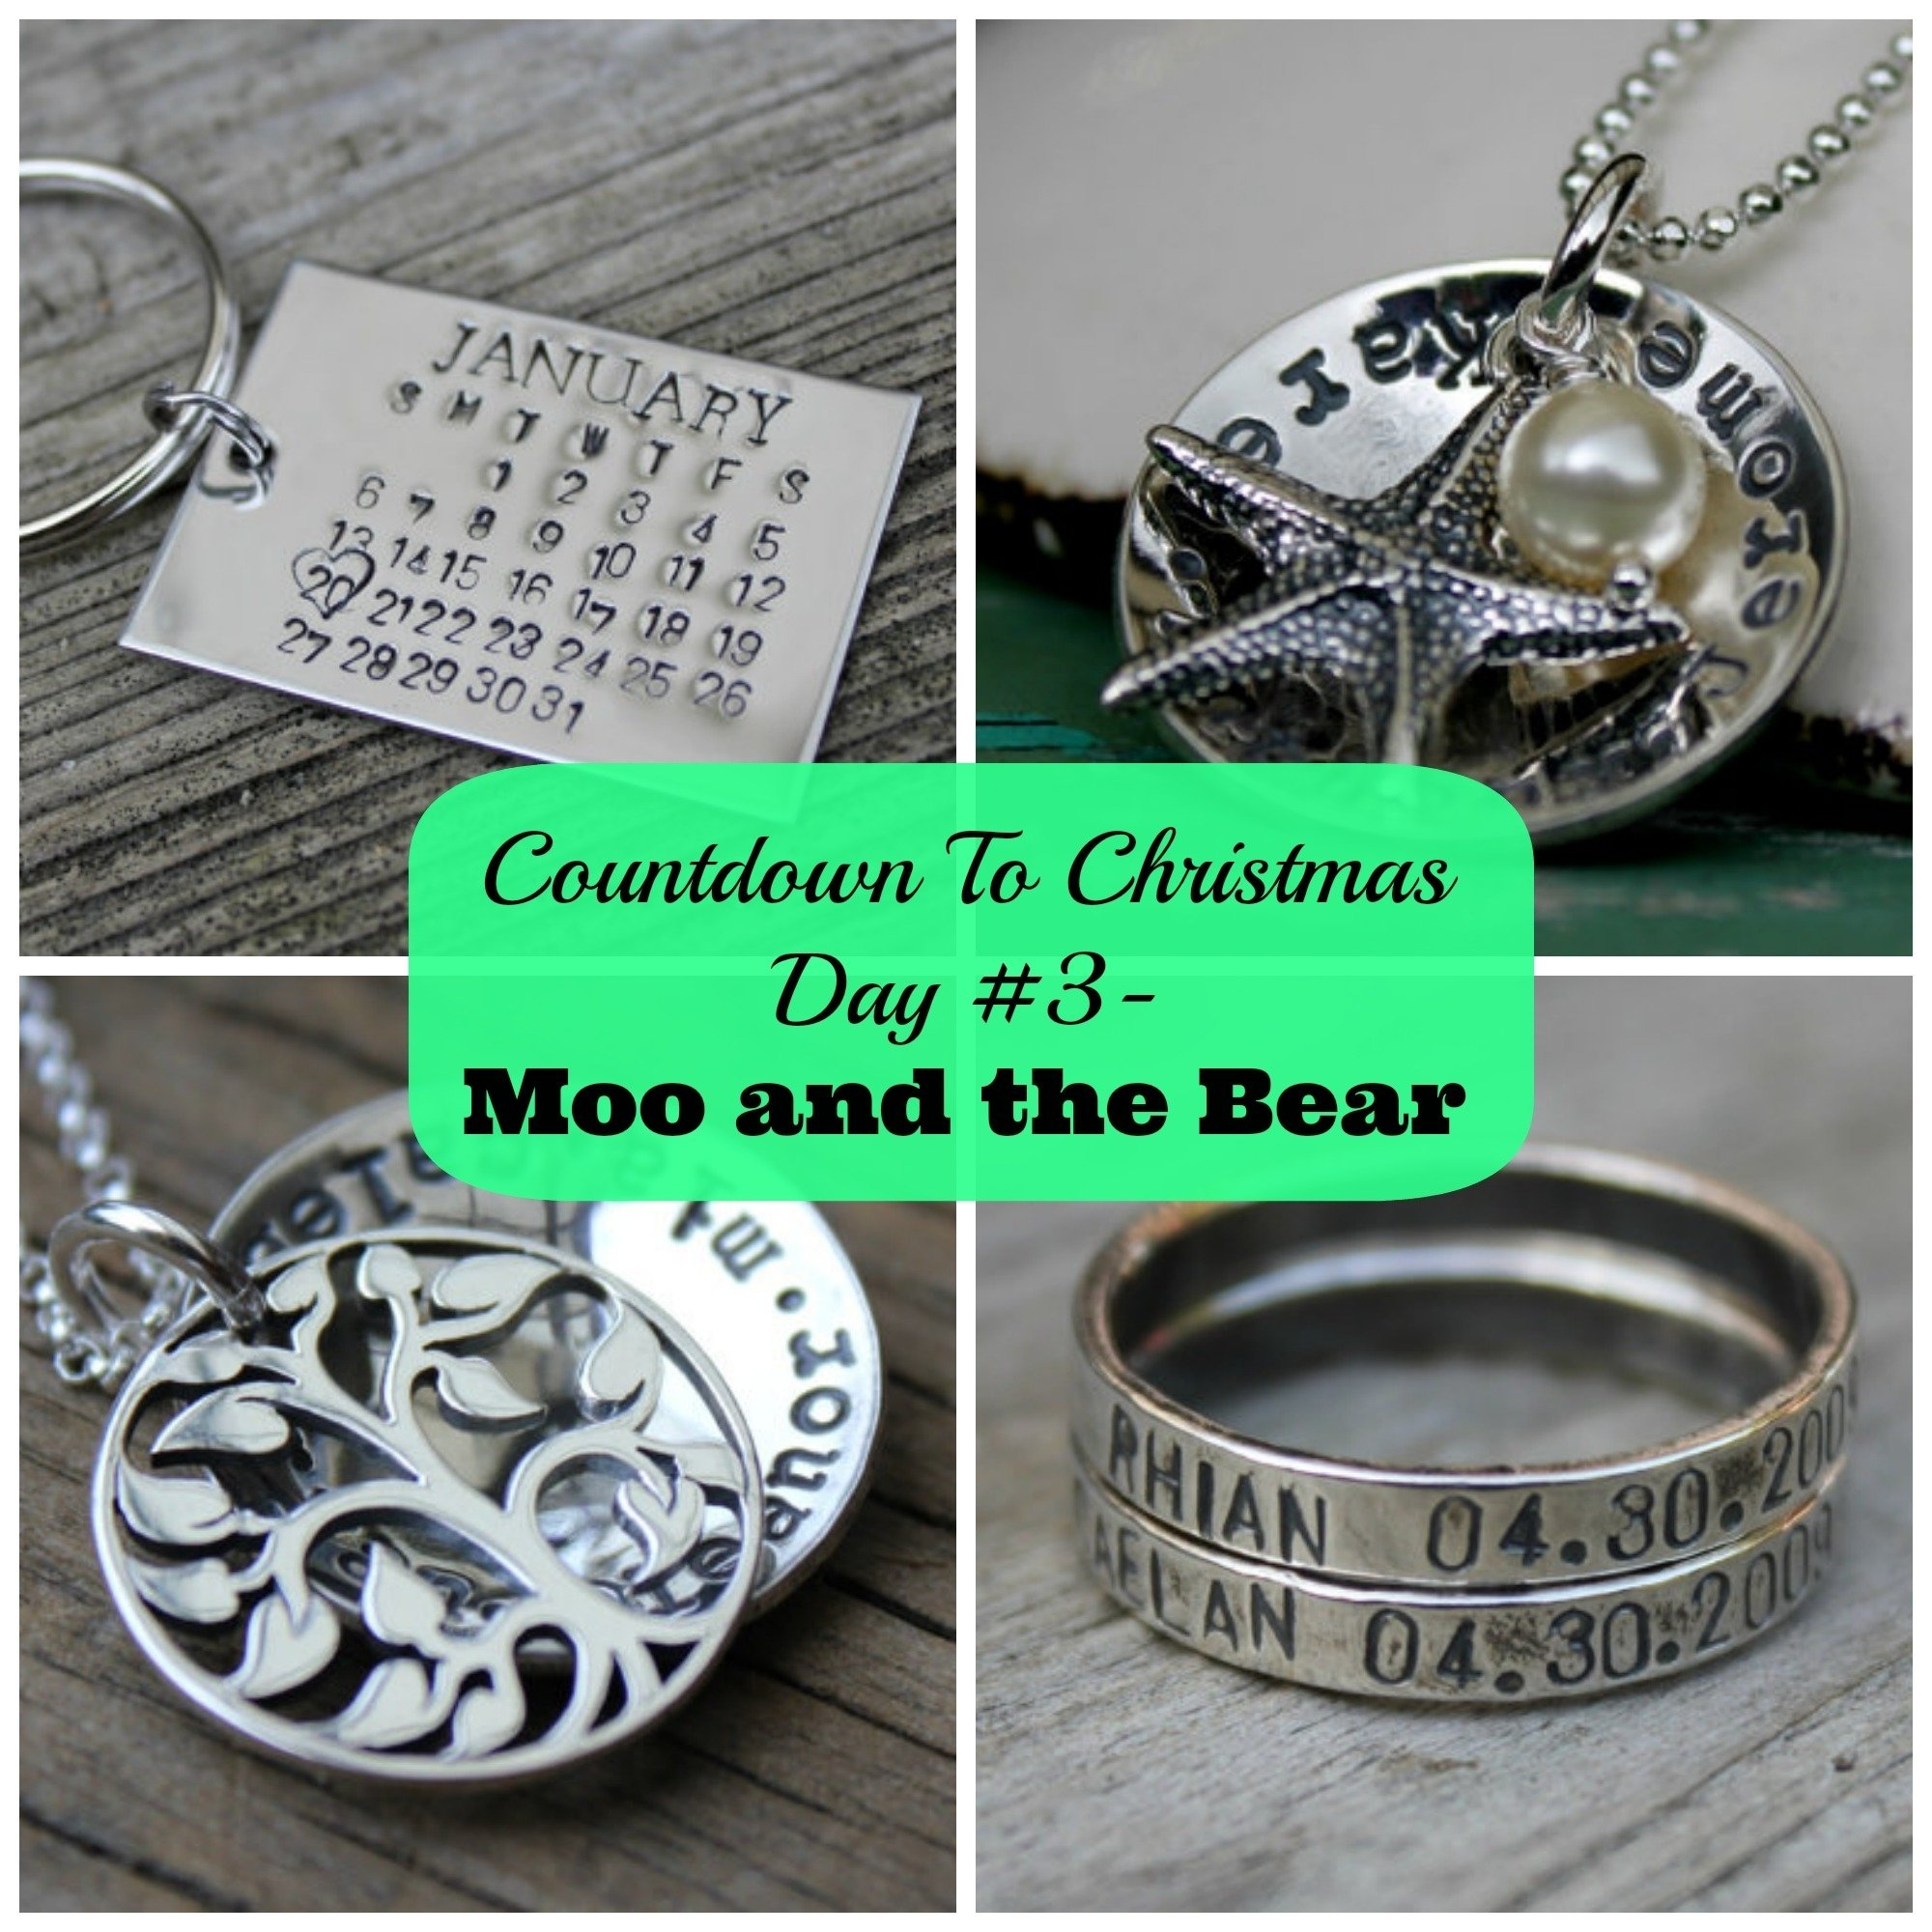 10 most popular romantic christmas gift ideas for boyfriend countdown to christmas day 3 moo and - Romantic Christmas Gift Ideas For Boyfriend